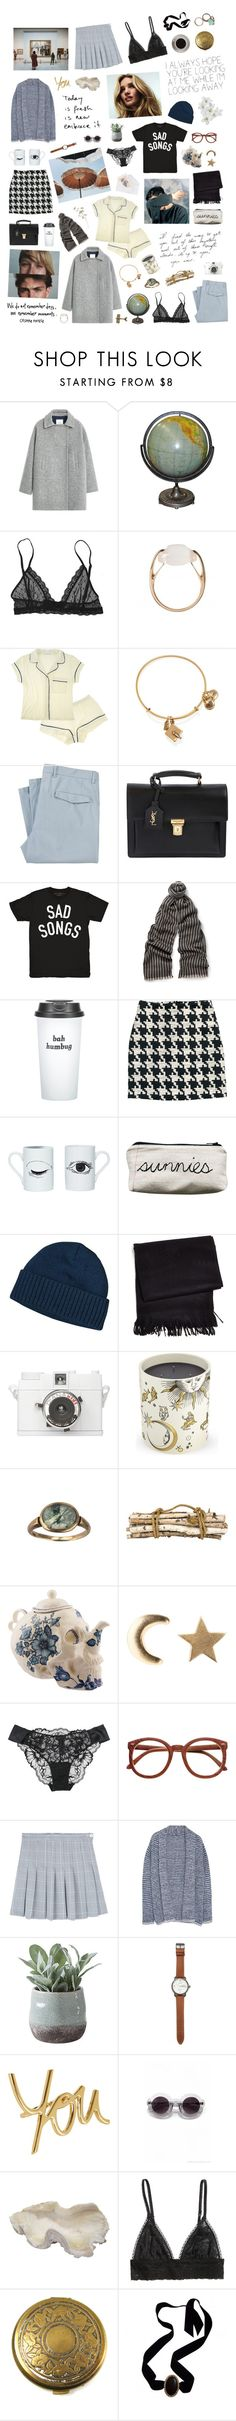 """""""Where did your heart go missing"""" by bitofbritt ❤ liked on Polyvore featuring MANGO, Eberjey, Salvatore Ferragamo, Alex and Ani, Yves Saint Laurent, Gucci, Bow & Drape, H&M, DOMESTIC and Patagonia"""